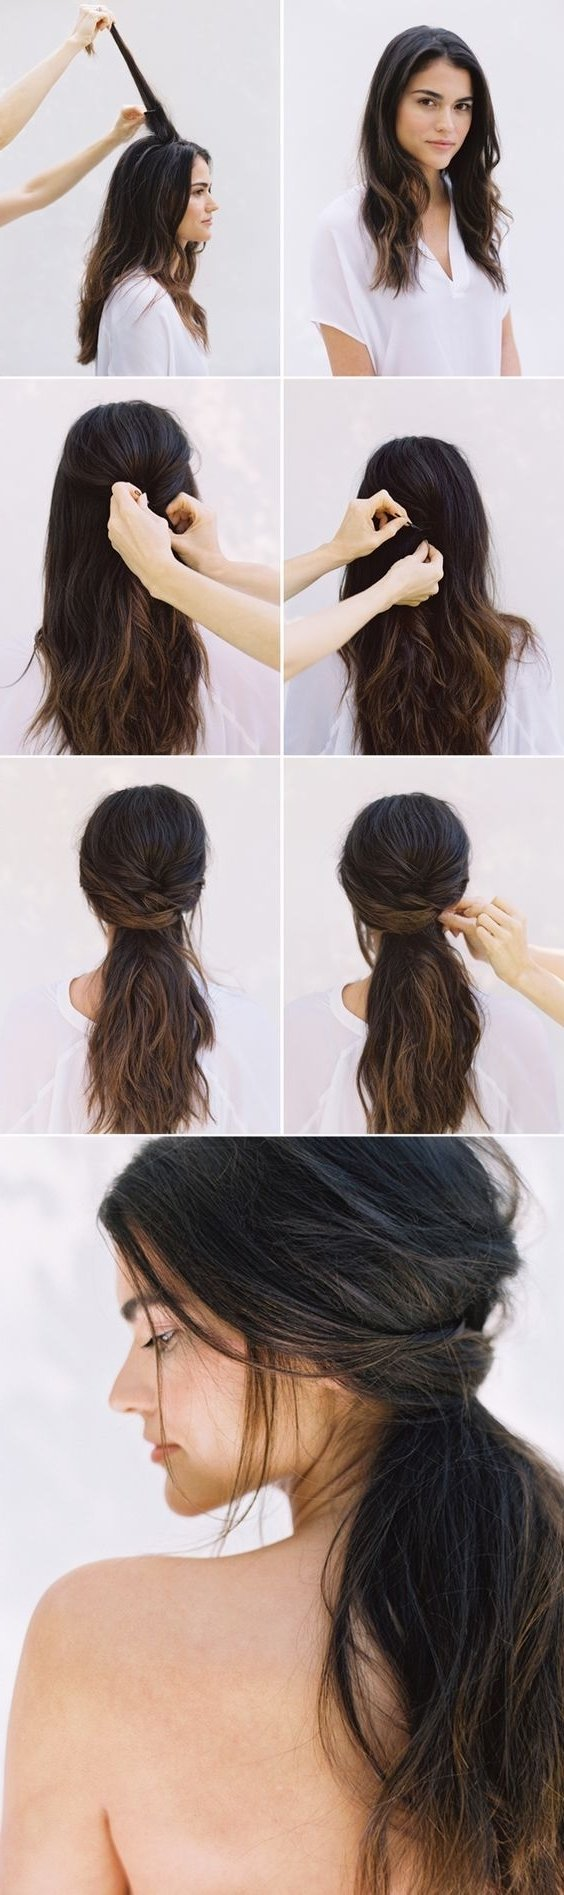 Free 15 Best Of Quick Easy Updo Hairstyles For Thick Hair Wallpaper